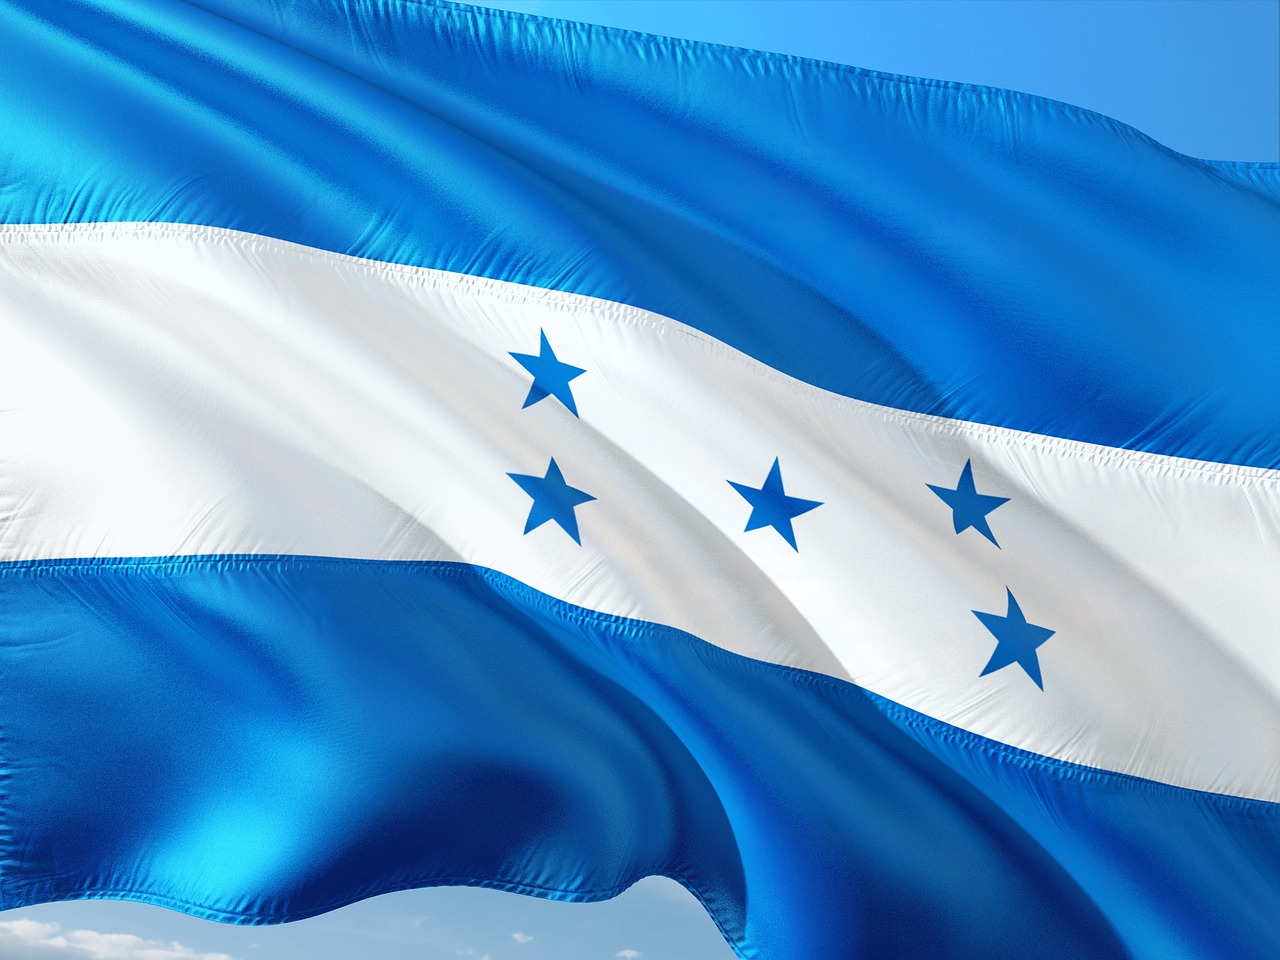 a look at the republic of honduras in central america Noun 1 a republic in central america achieved independence from spain in 1821 an early center of mayan culture (synonym) republic of honduras.